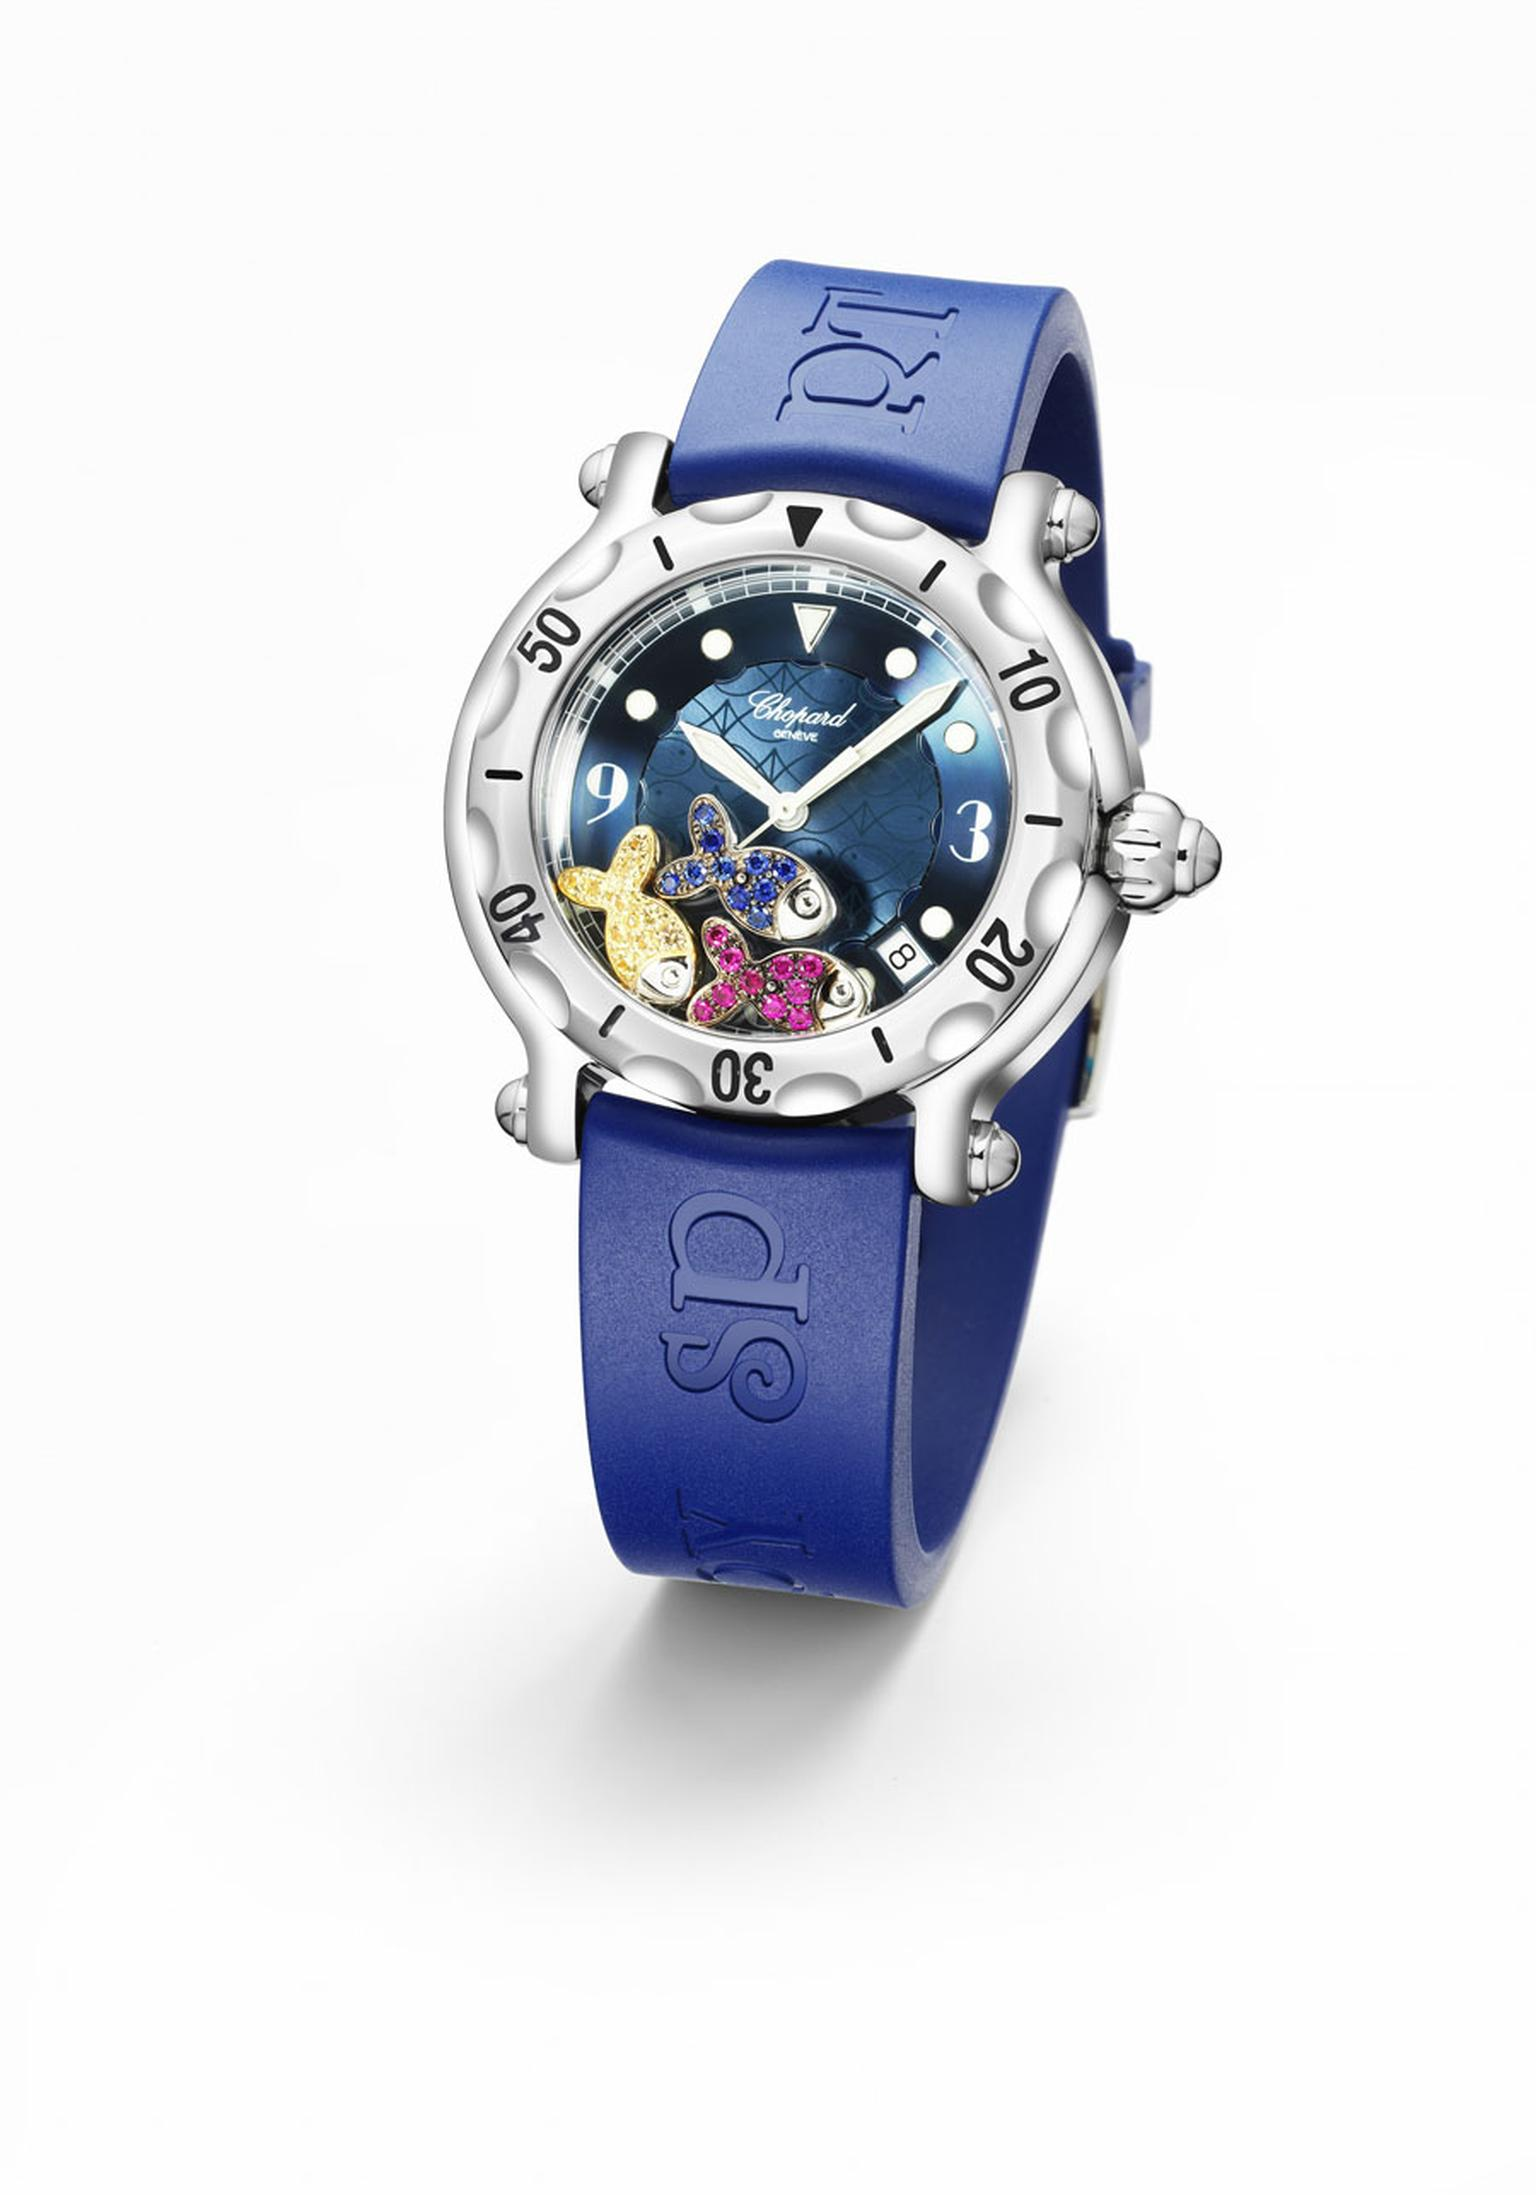 ChopardHappySport6.jpg